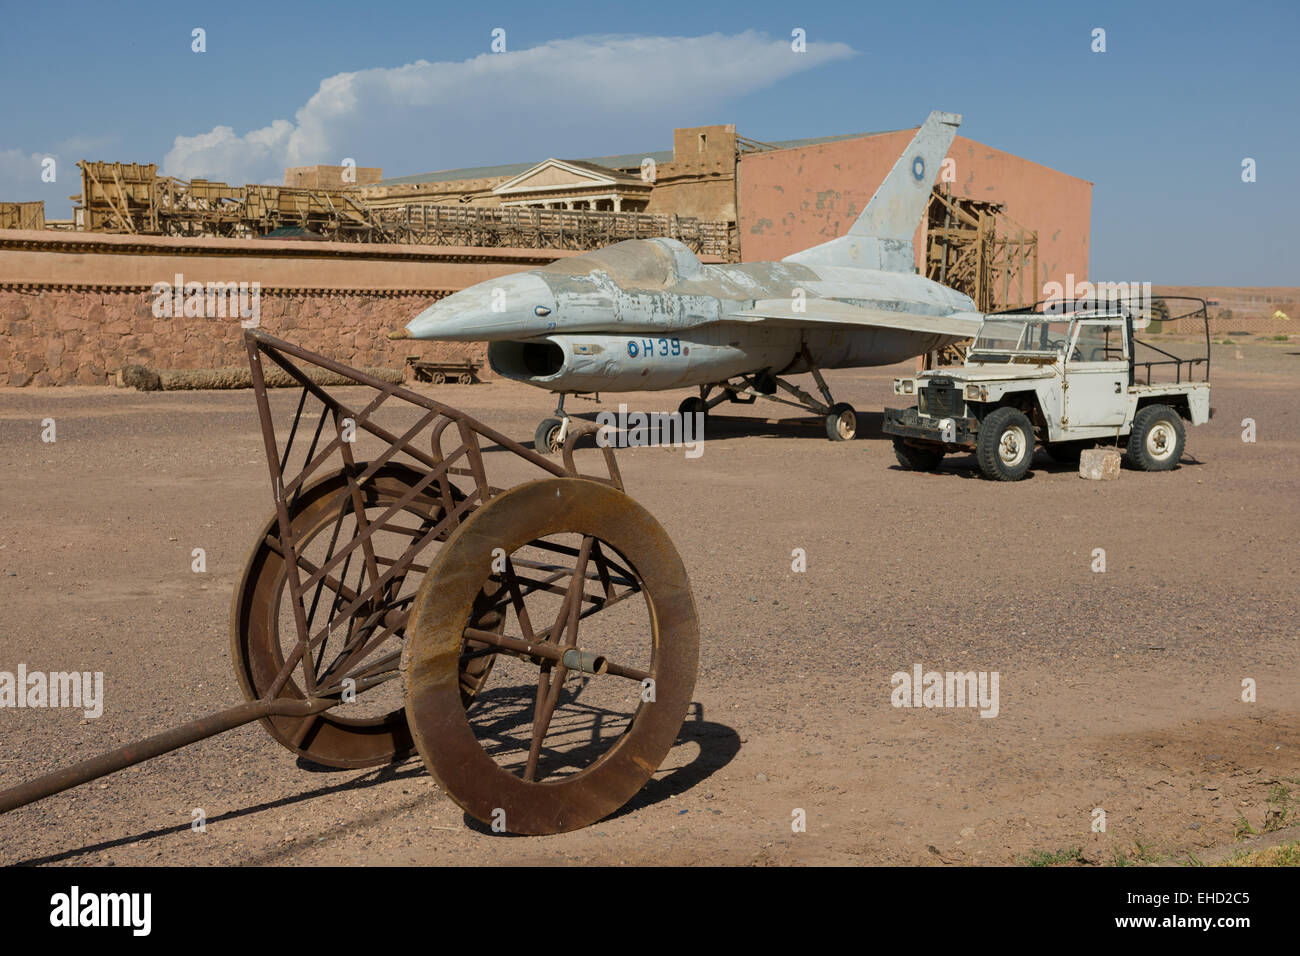 Plane from Jewel in the Nile and chariot from Ben Hur at the Atlas Corporation Film Studios, Ouarzazate, Morocco - Stock Image